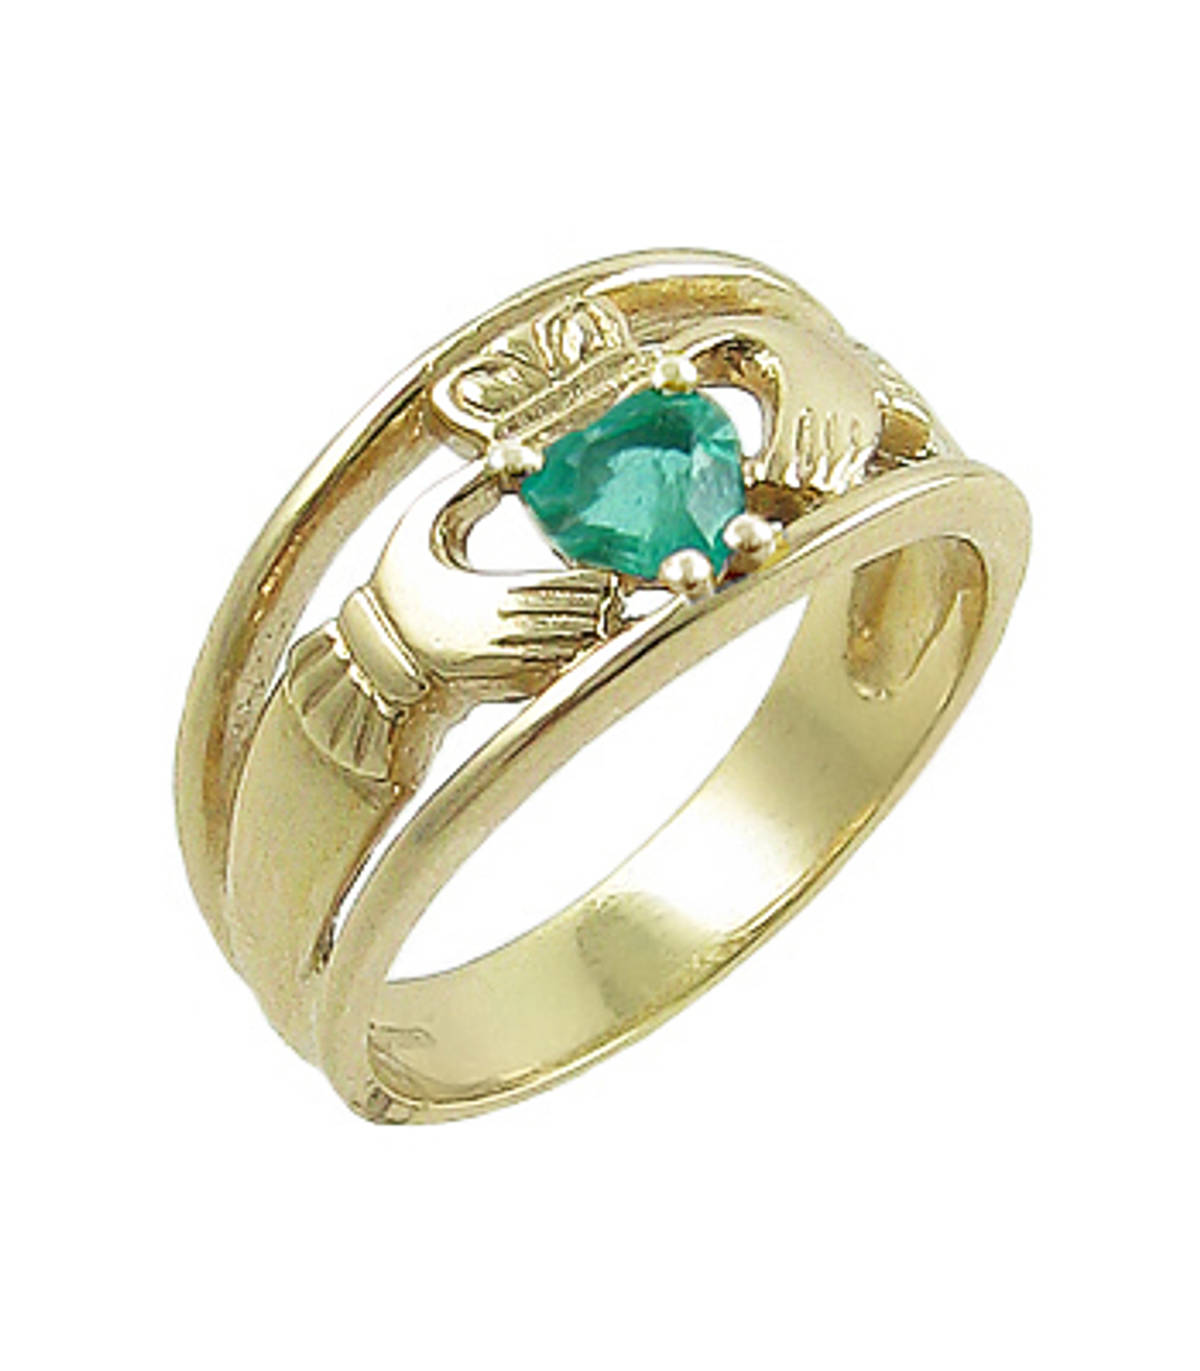 Irish made 14 carat yellow gold 0.45cts emerald/0.06cts diamonds claddagh engagement ring